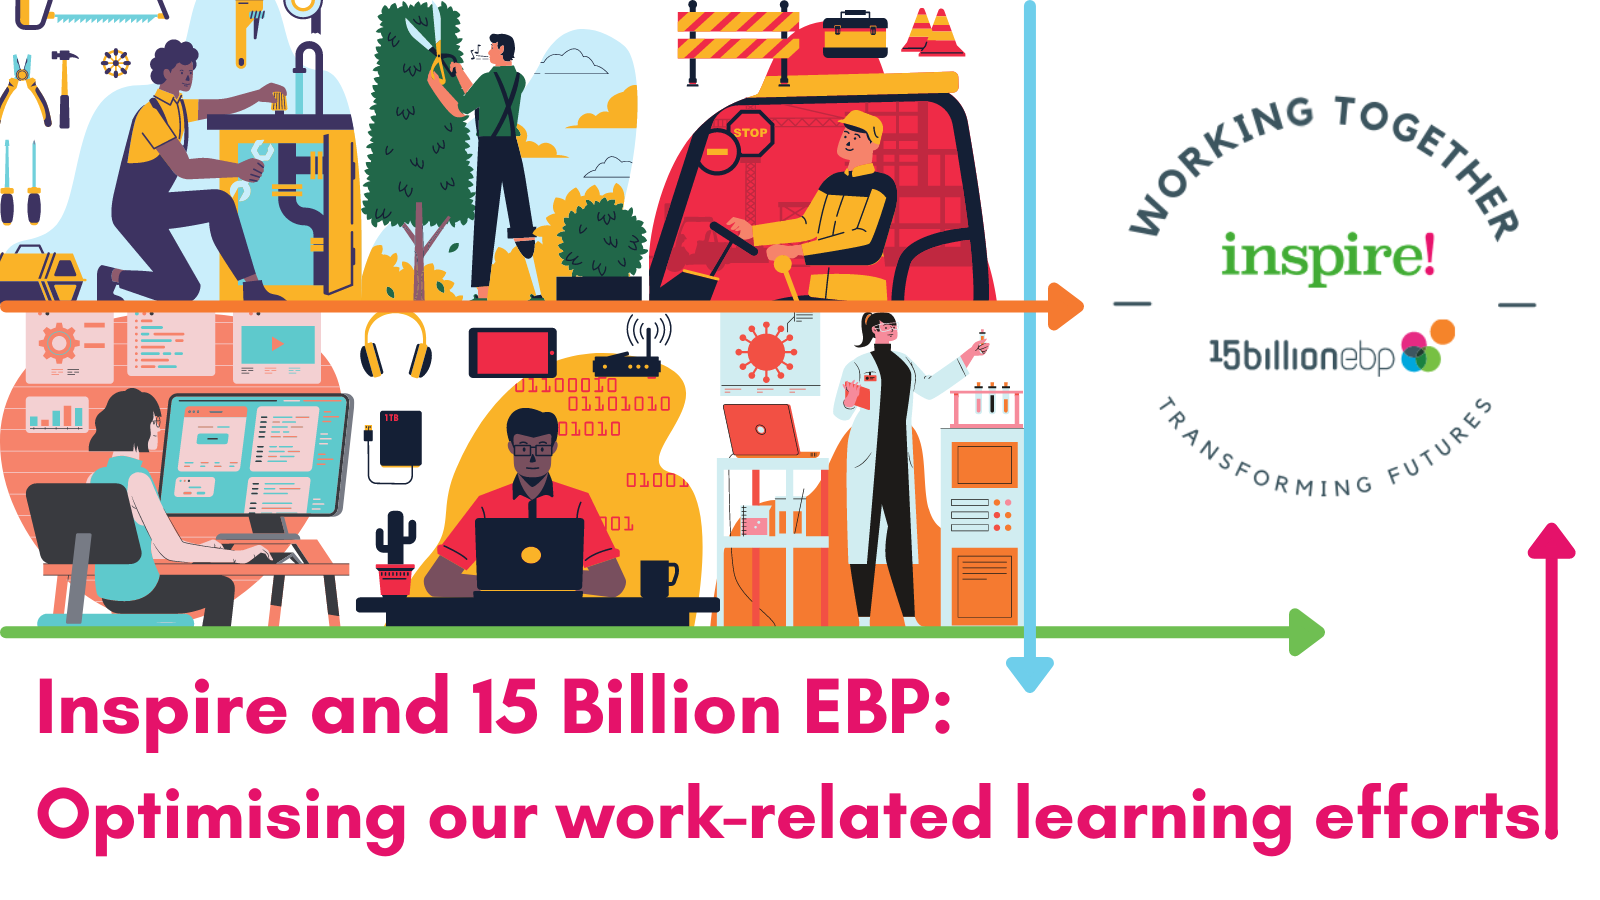 Inspire and 15 Billion EBP Optimising our work-related learning efforts.